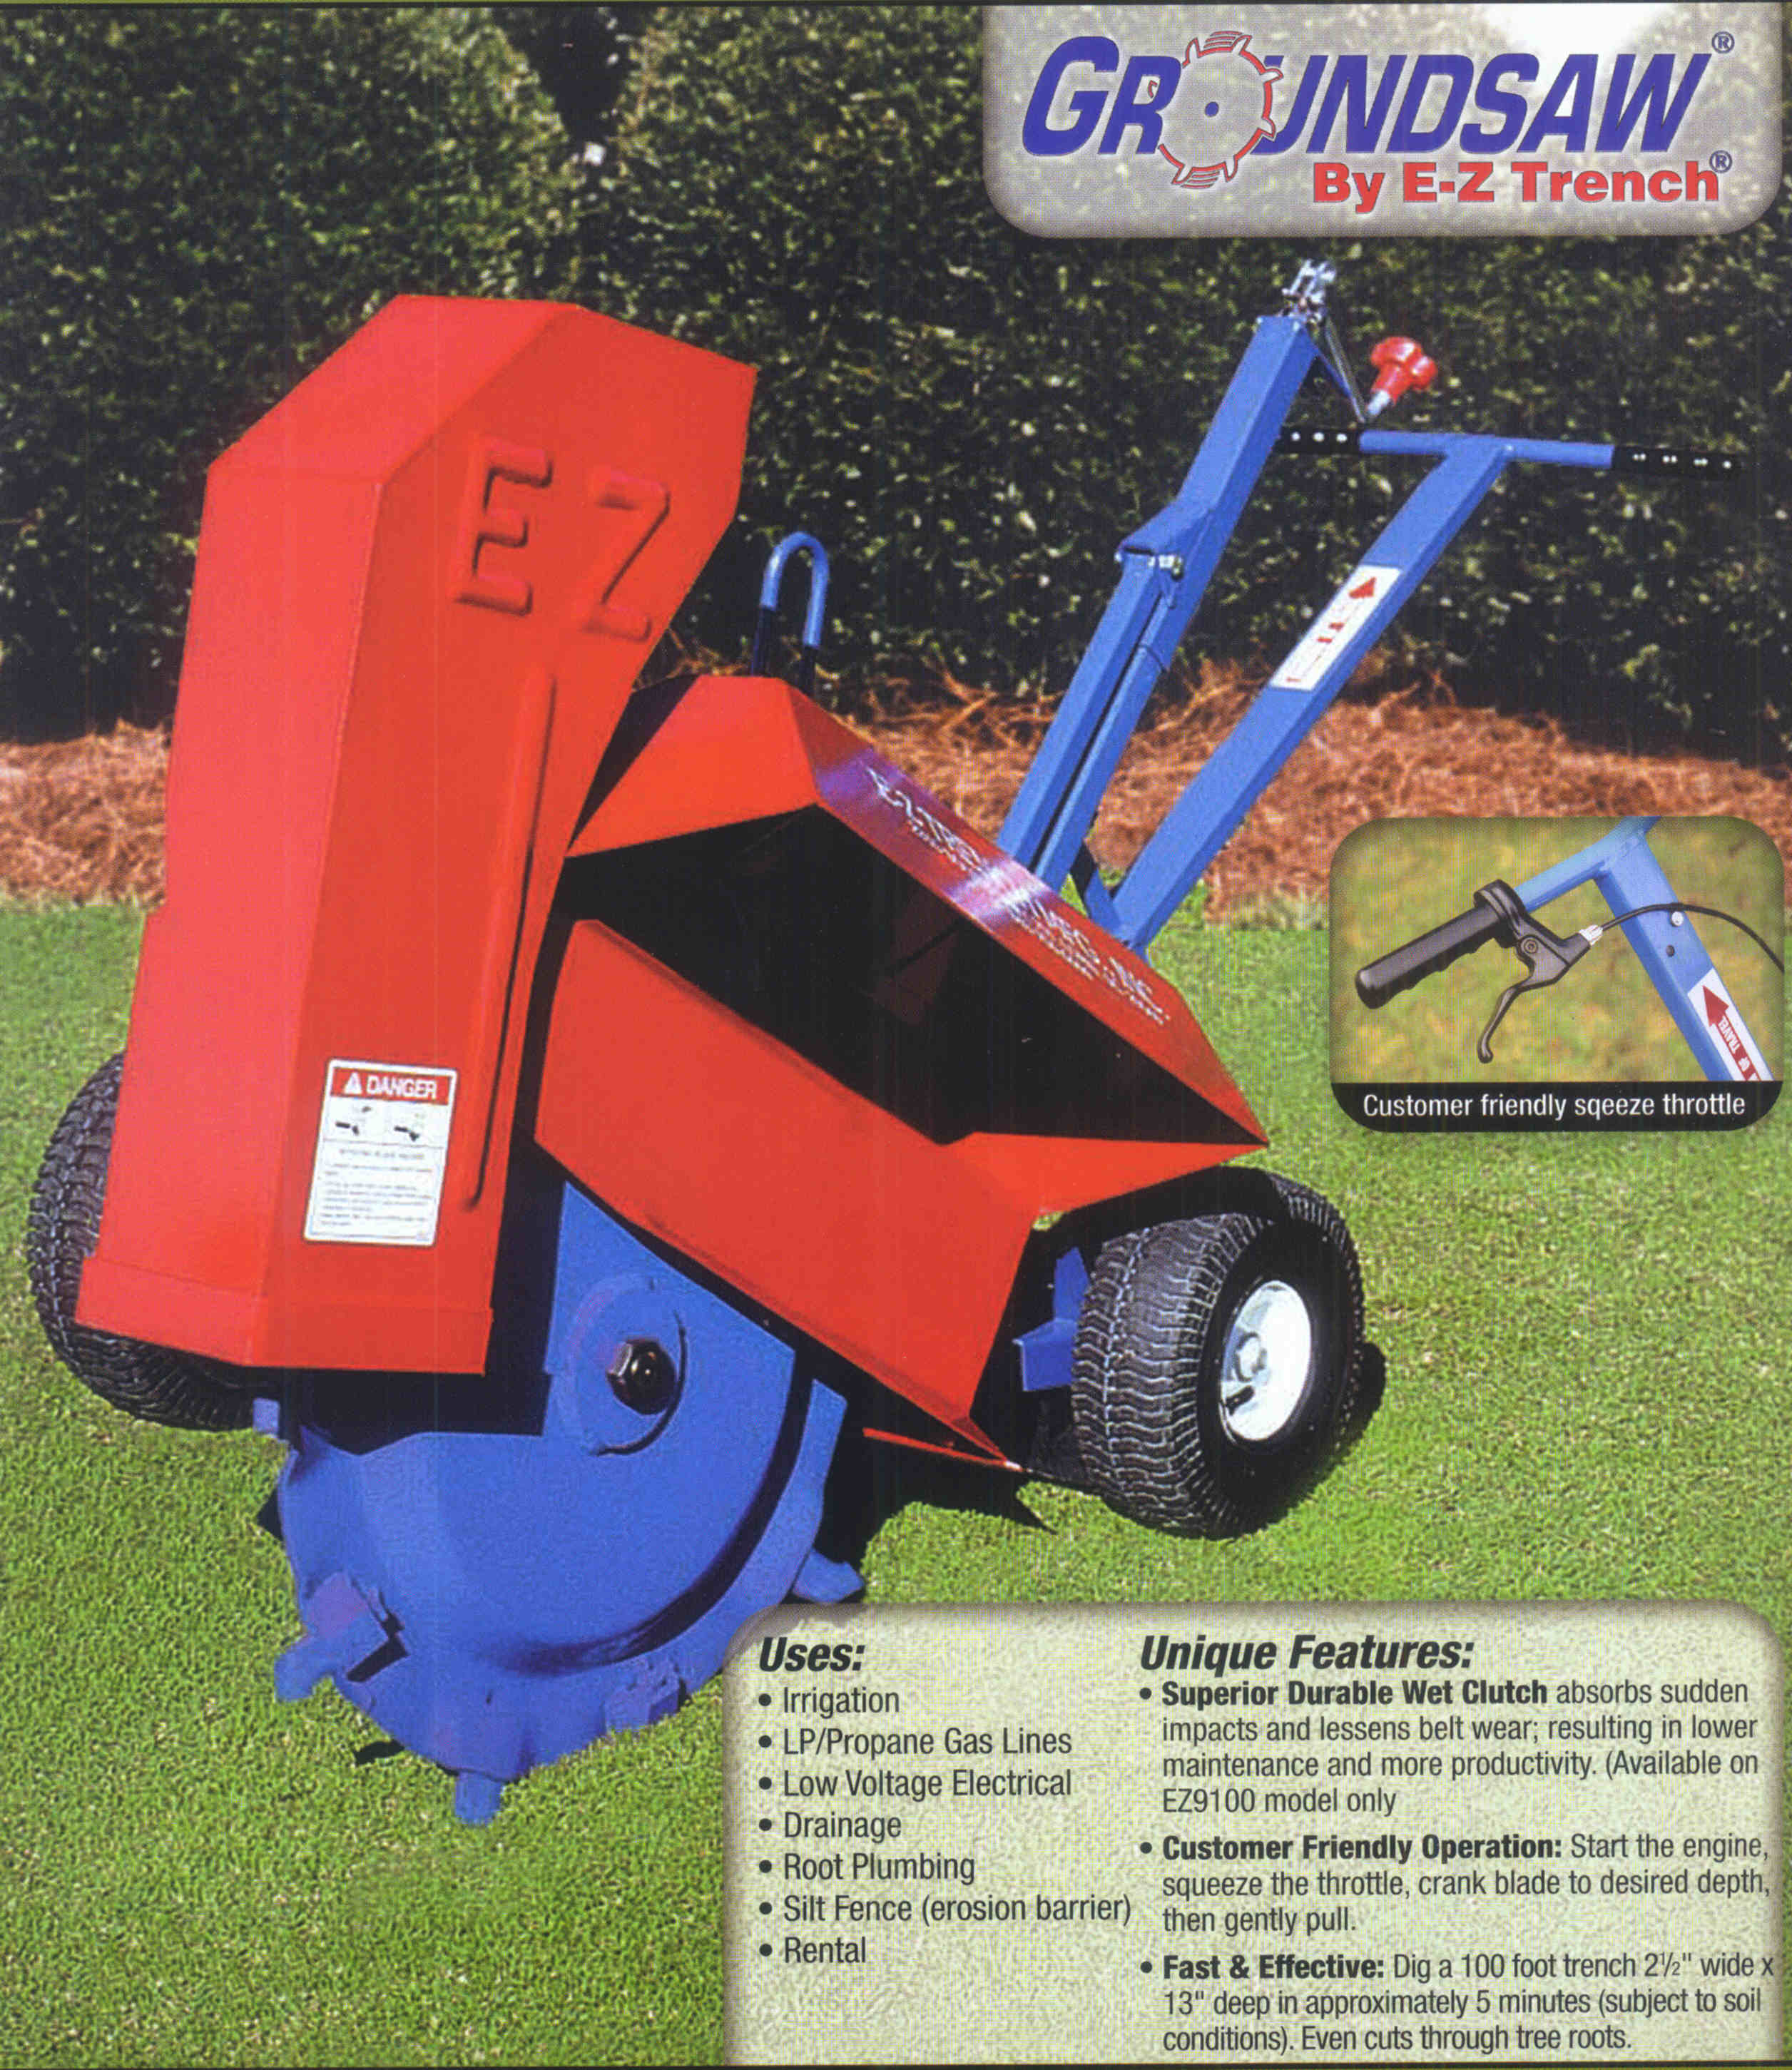 Groundsaw Trenching Machine For Narrow Trenches (2.5 inches wide up to 13 inches deep, and for cutting tree roots)